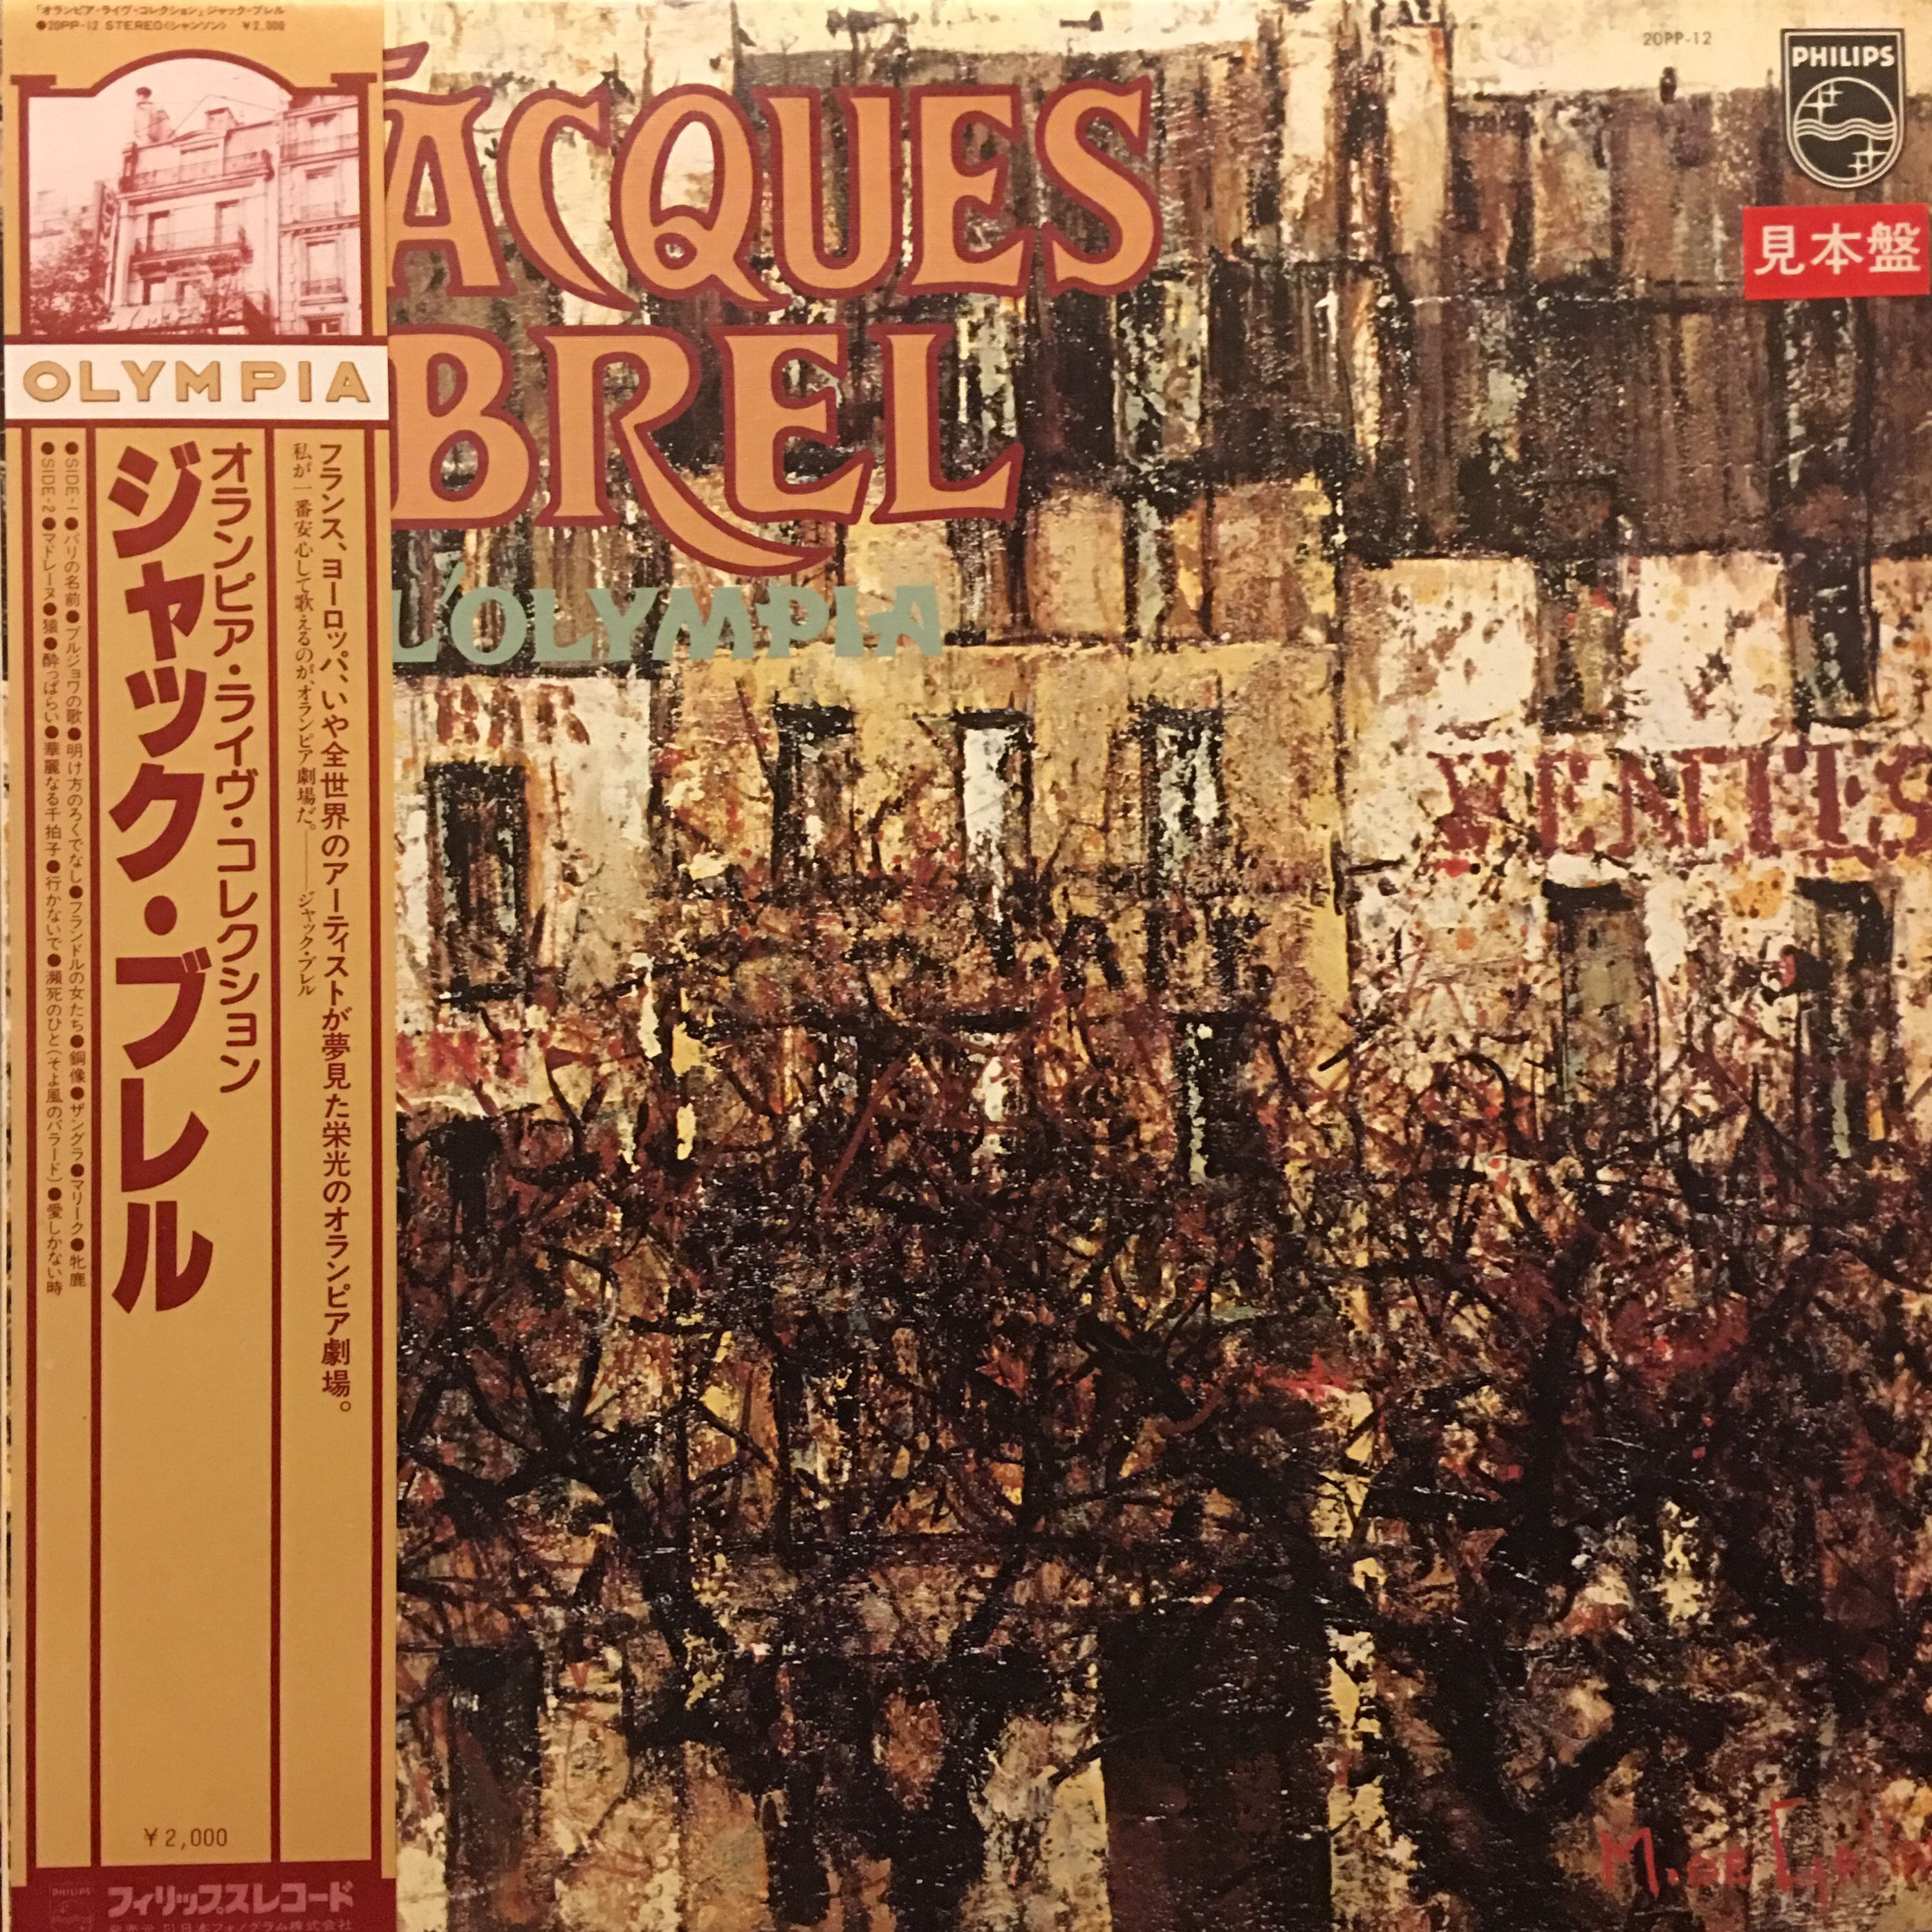 Jacques Brel, Olympia 1961 - Japanese cover